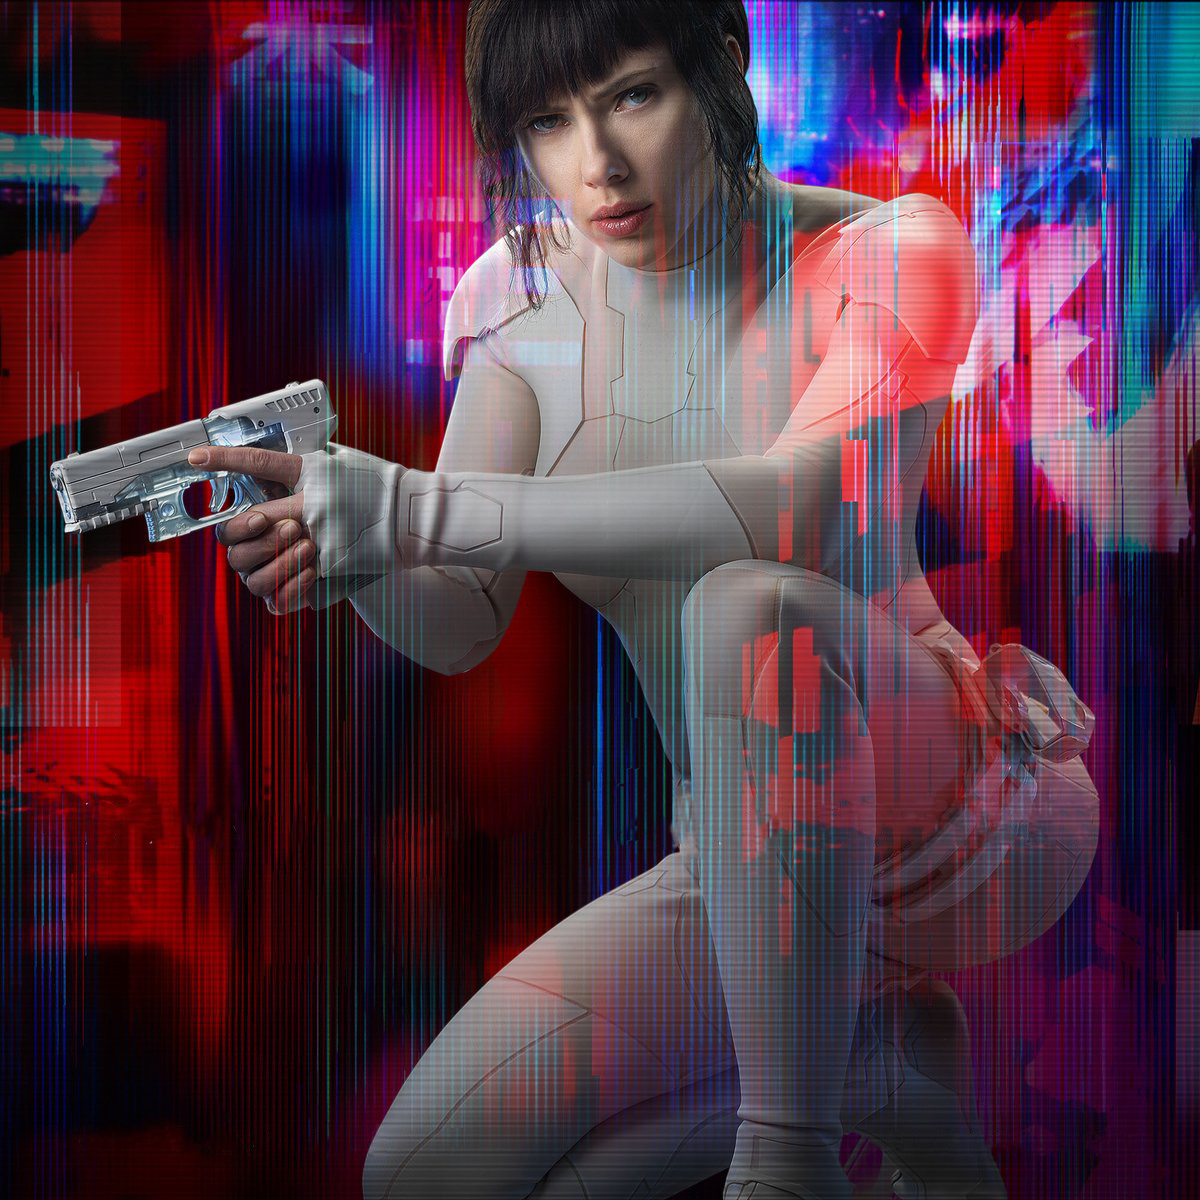 Scarlett Johansson in Ghost in the Shell as The Major / Motoko Kusanagi